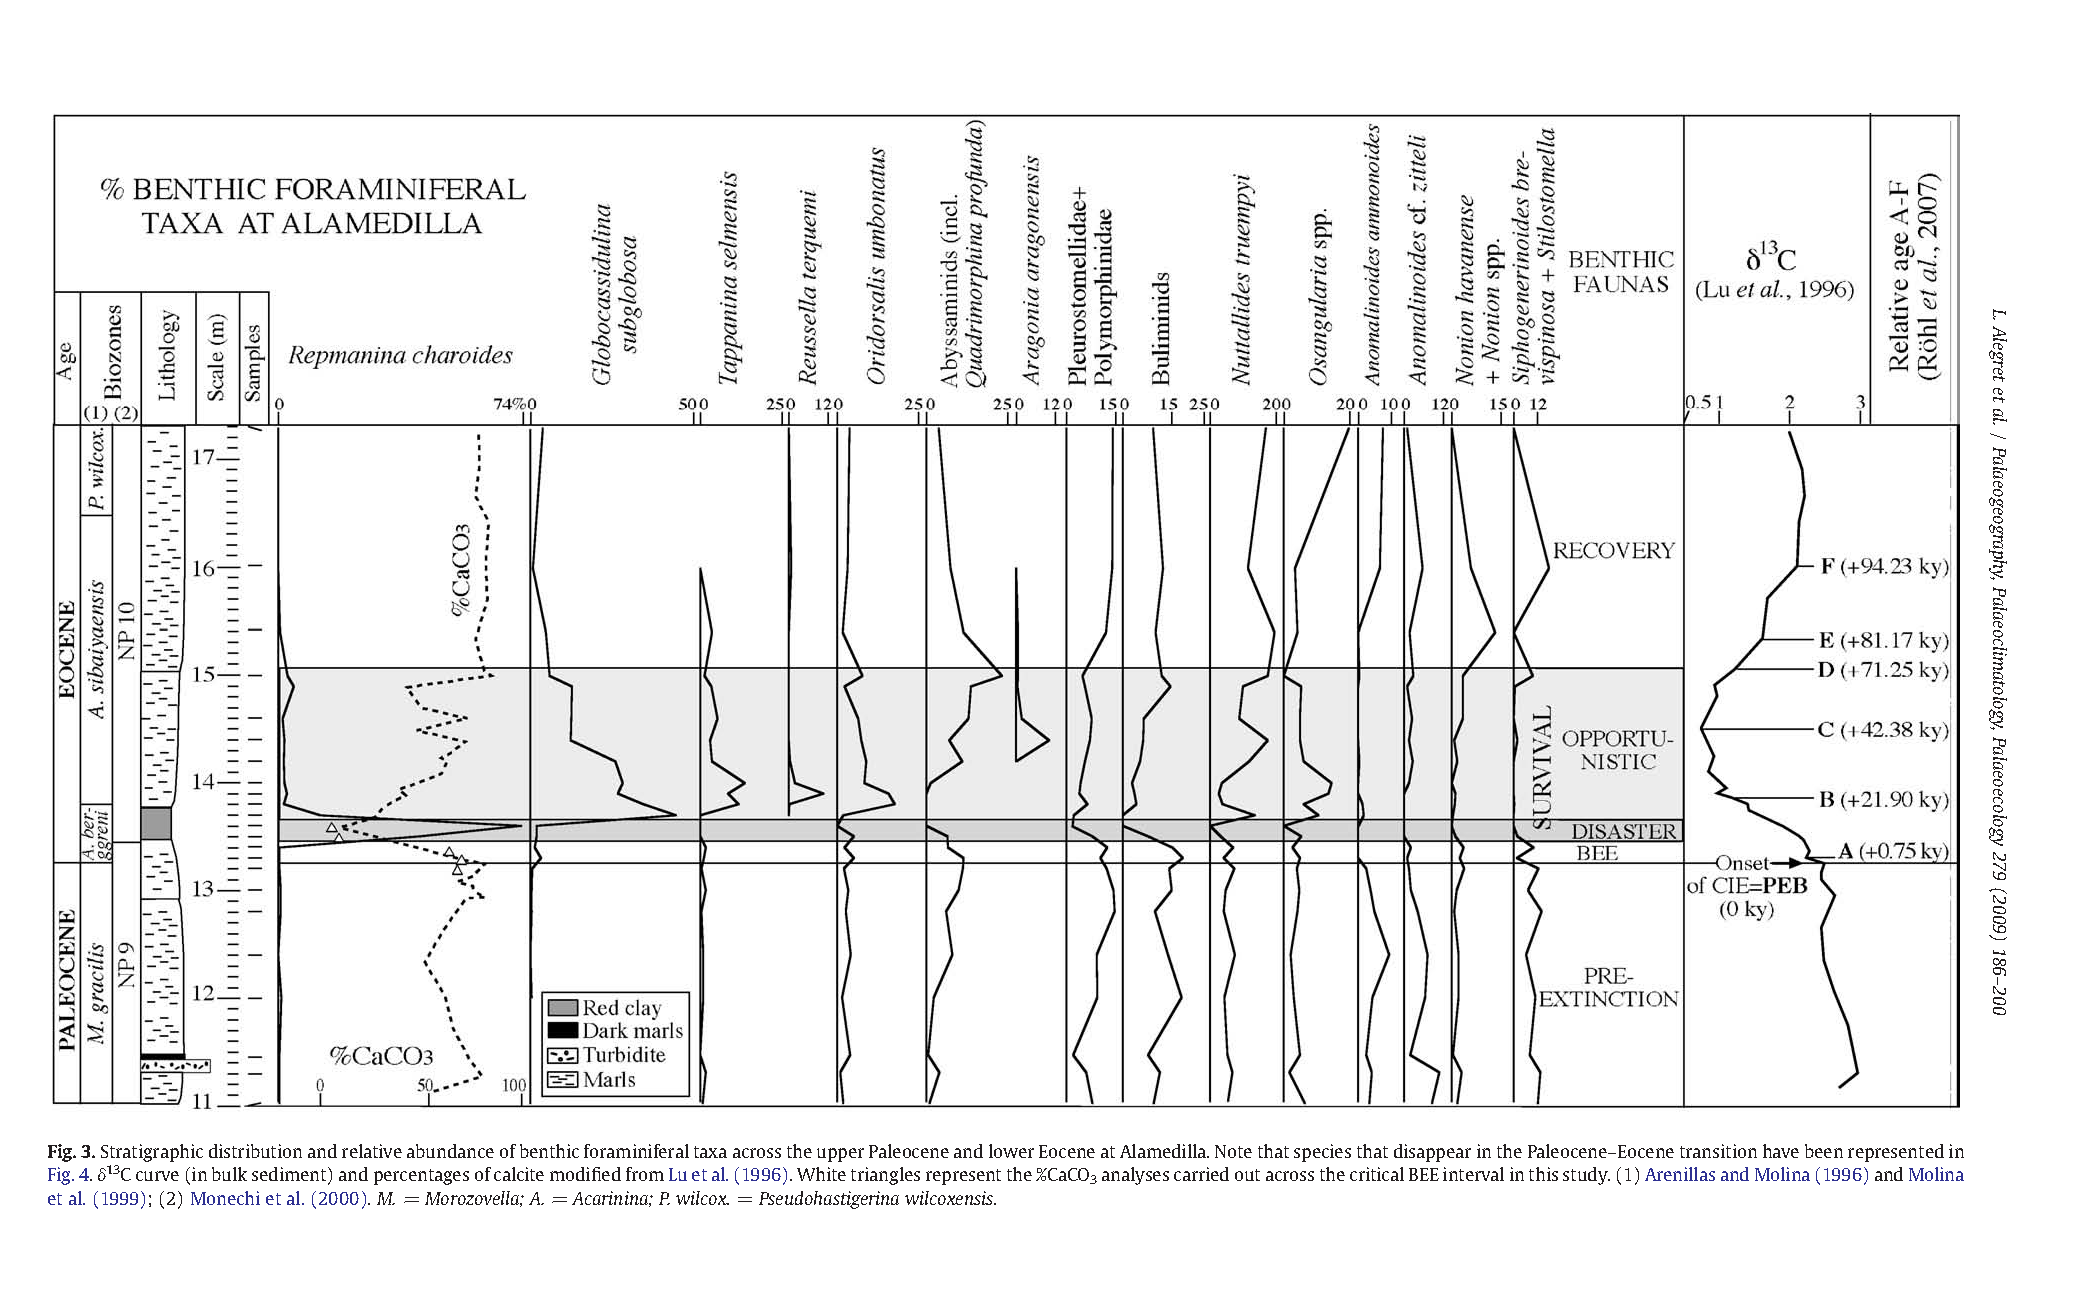 Fig 3 from Extinction and recovery of benthic foraminifera across the Paleocene–Eocene